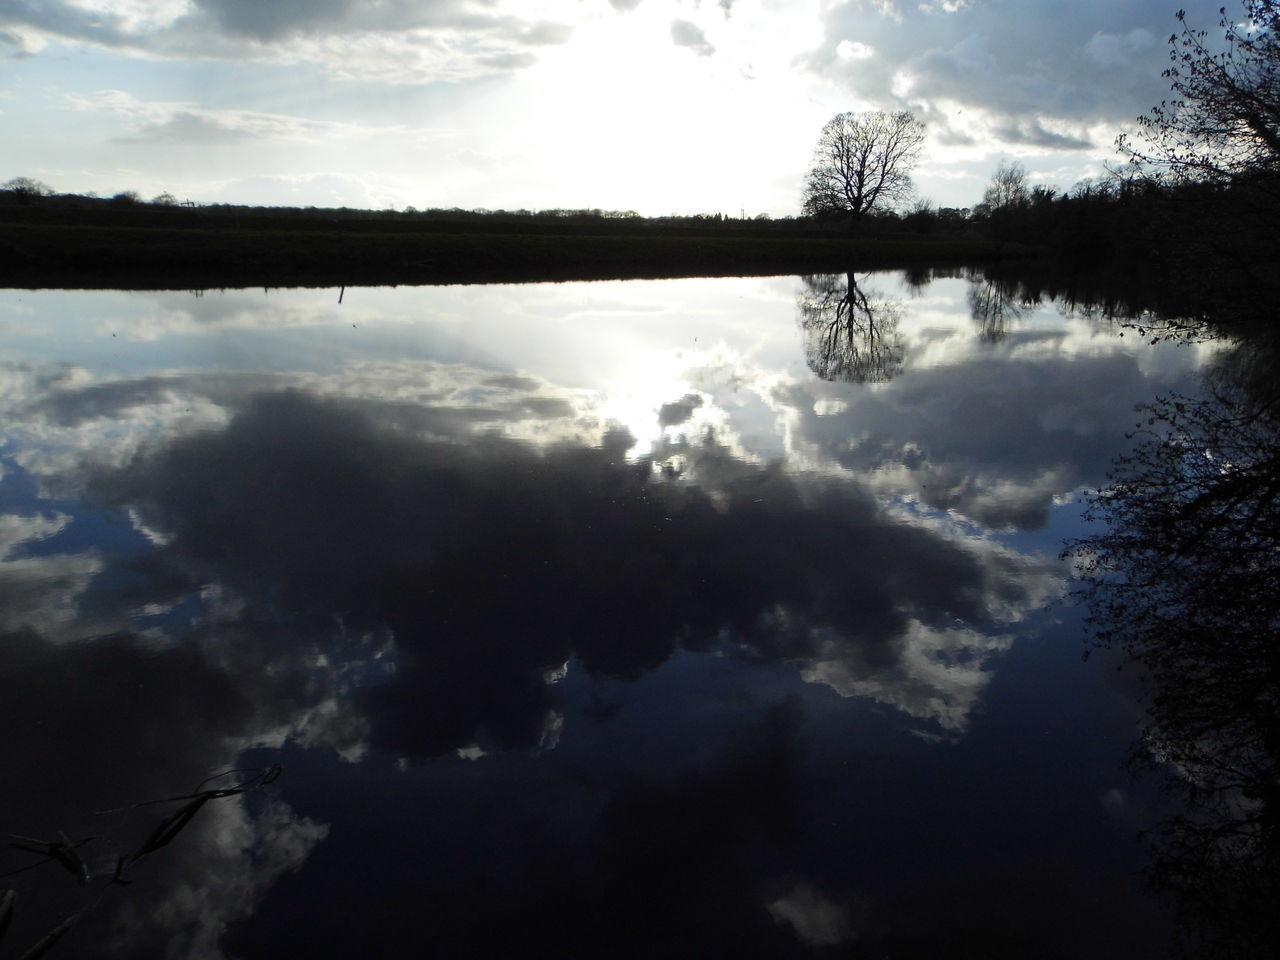 sky, cloud - sky, reflection, nature, tranquility, tranquil scene, water, silhouette, outdoors, no people, beauty in nature, scenics, day, tree